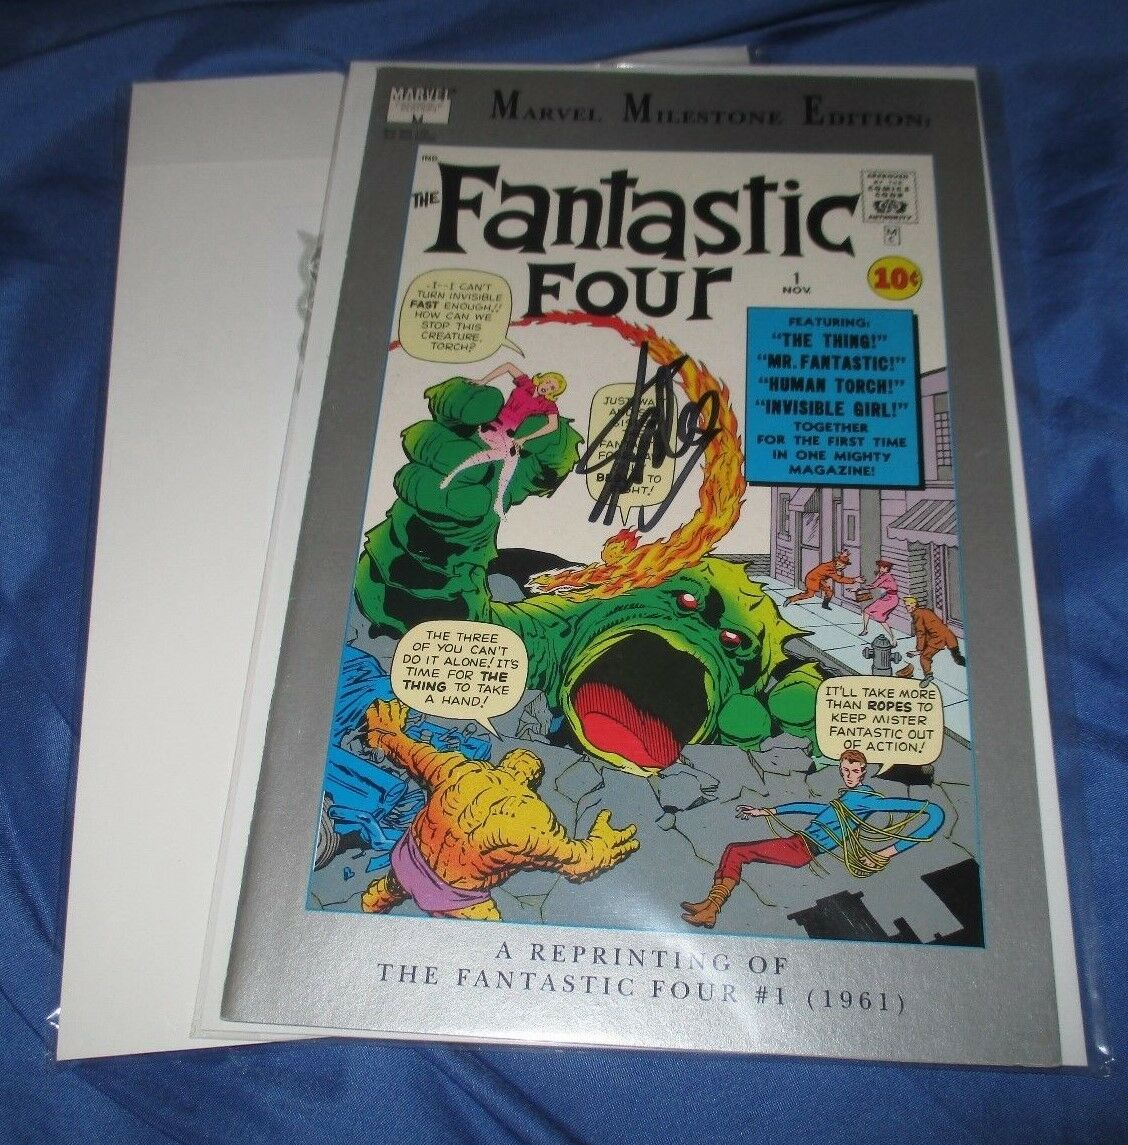 MARVEL MILESTONE EDITION Signed Comic by Stan Lee w/COA  Fantastic Four  #1